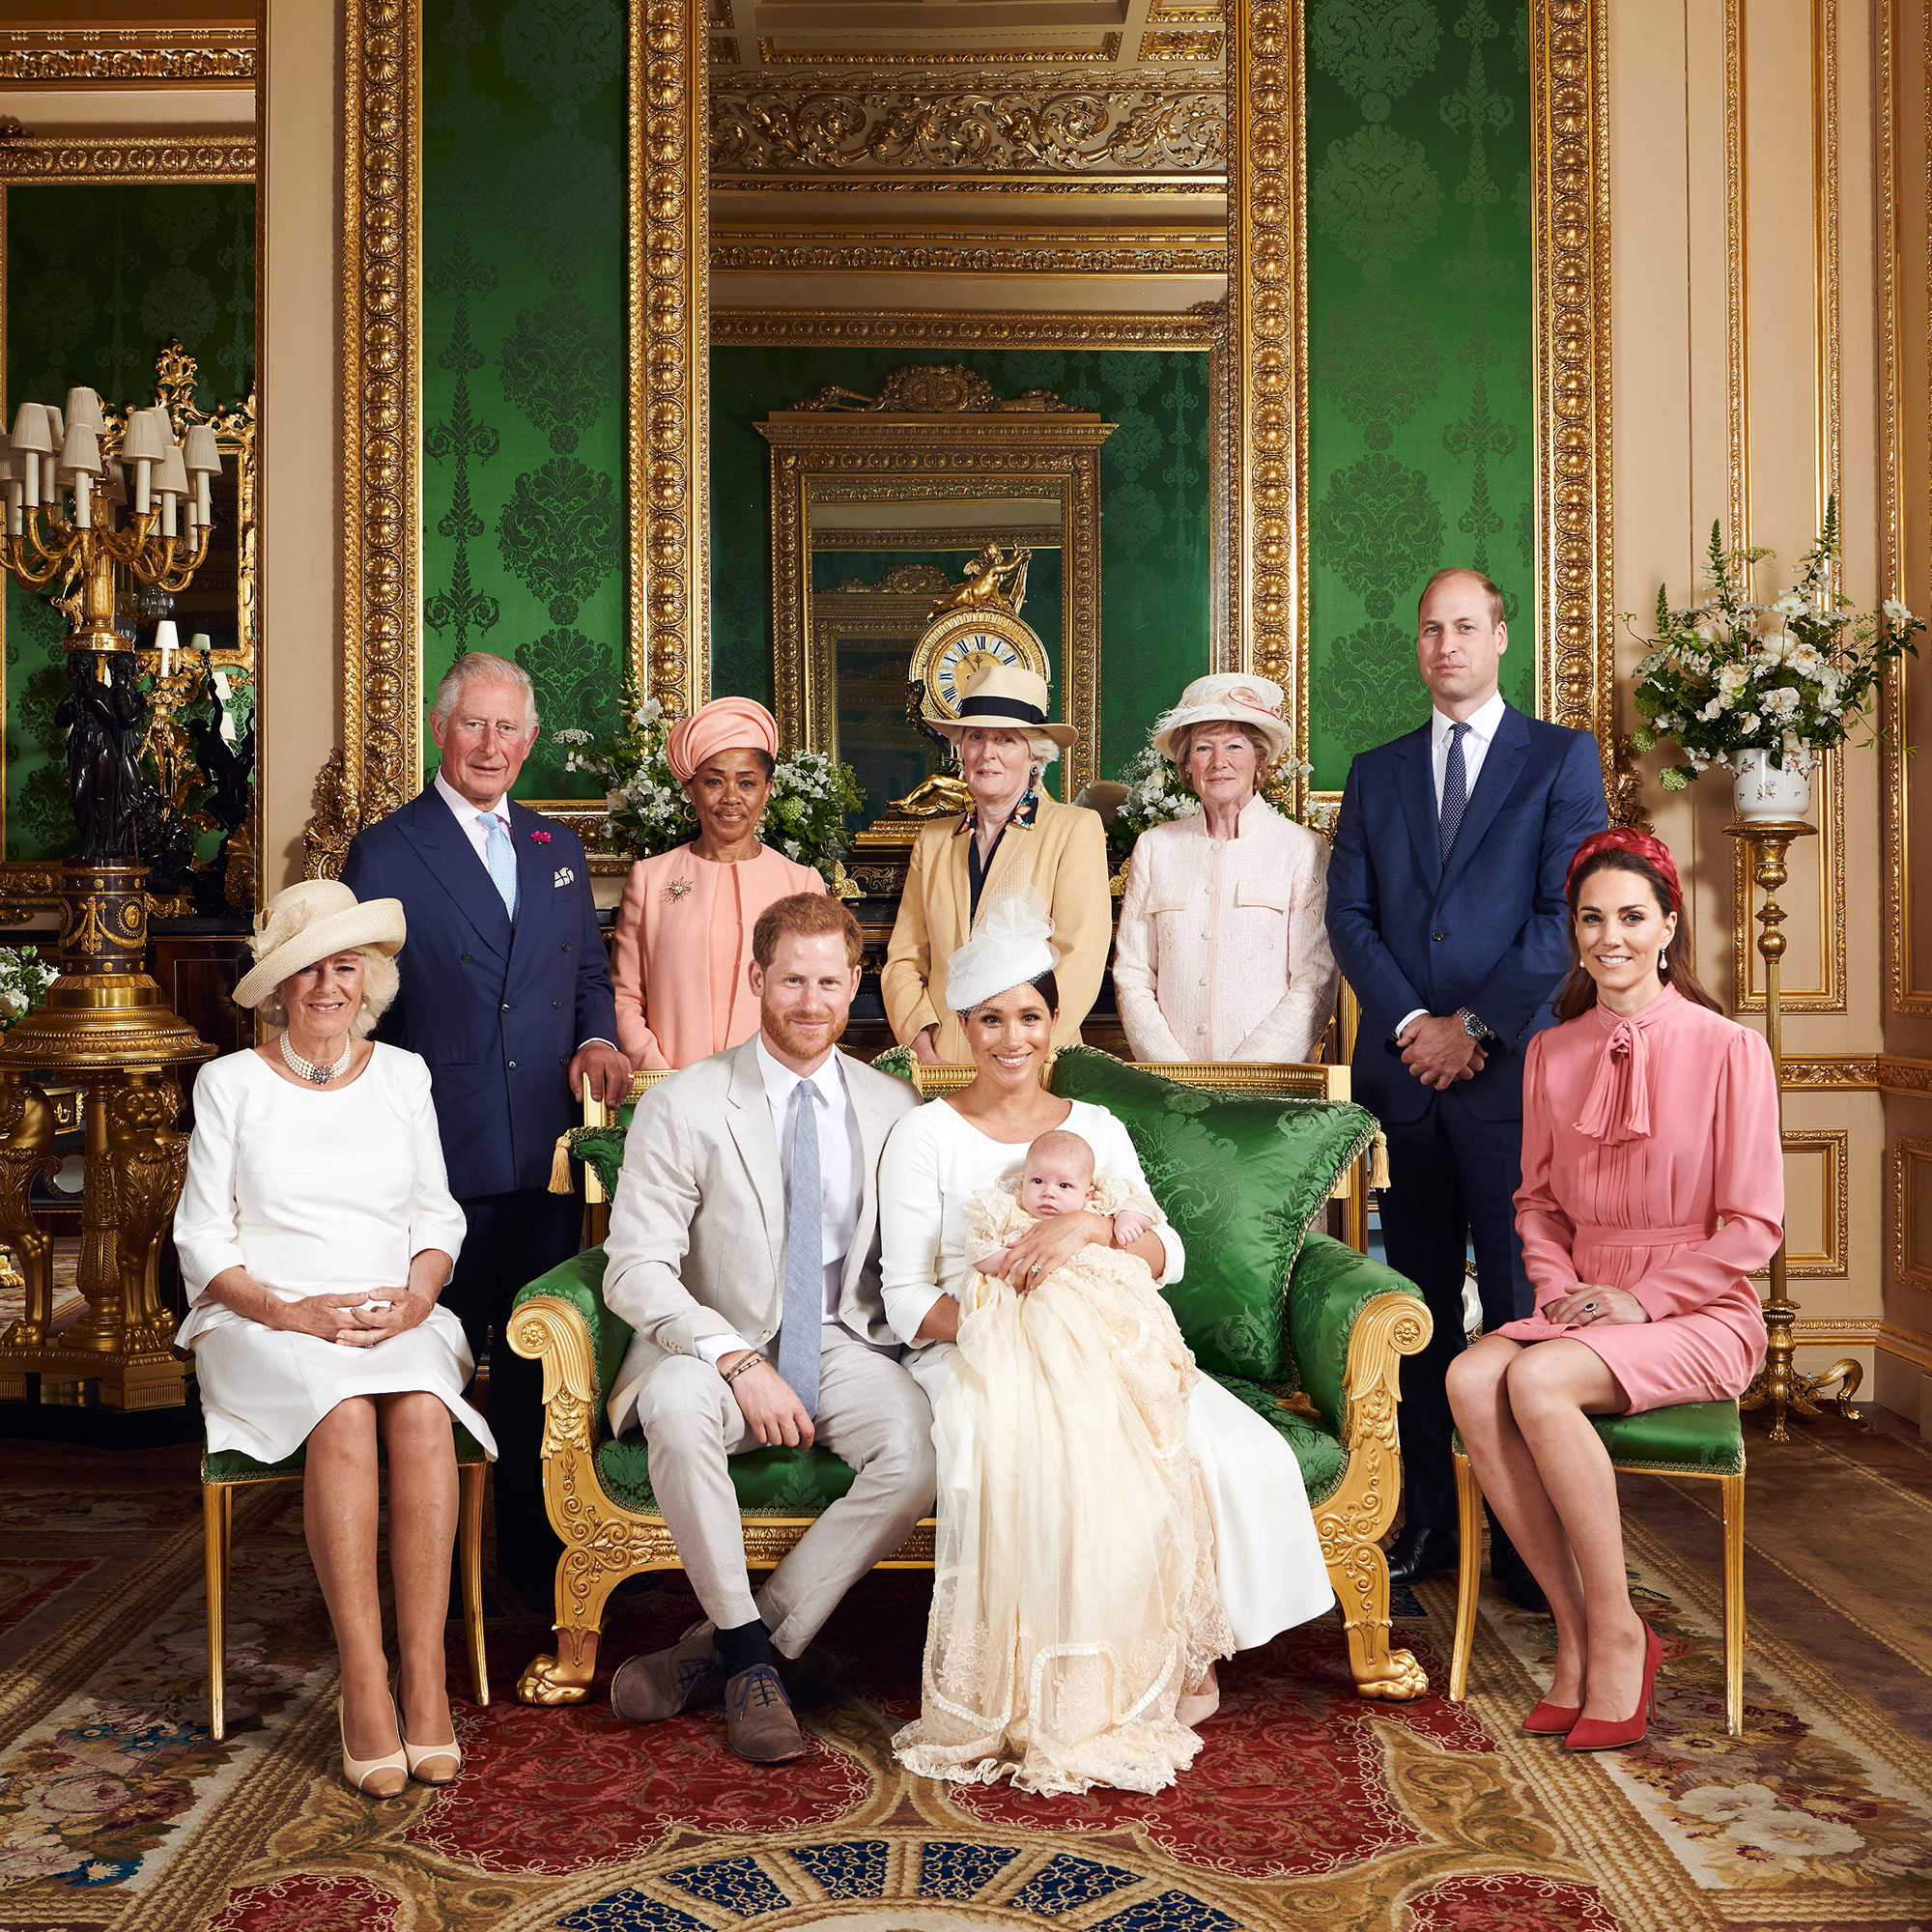 2019 Royal Family Portrait Meghan Markle Baby Archie Harrison Prince Harry Kate Middleton Queen Elizabeth